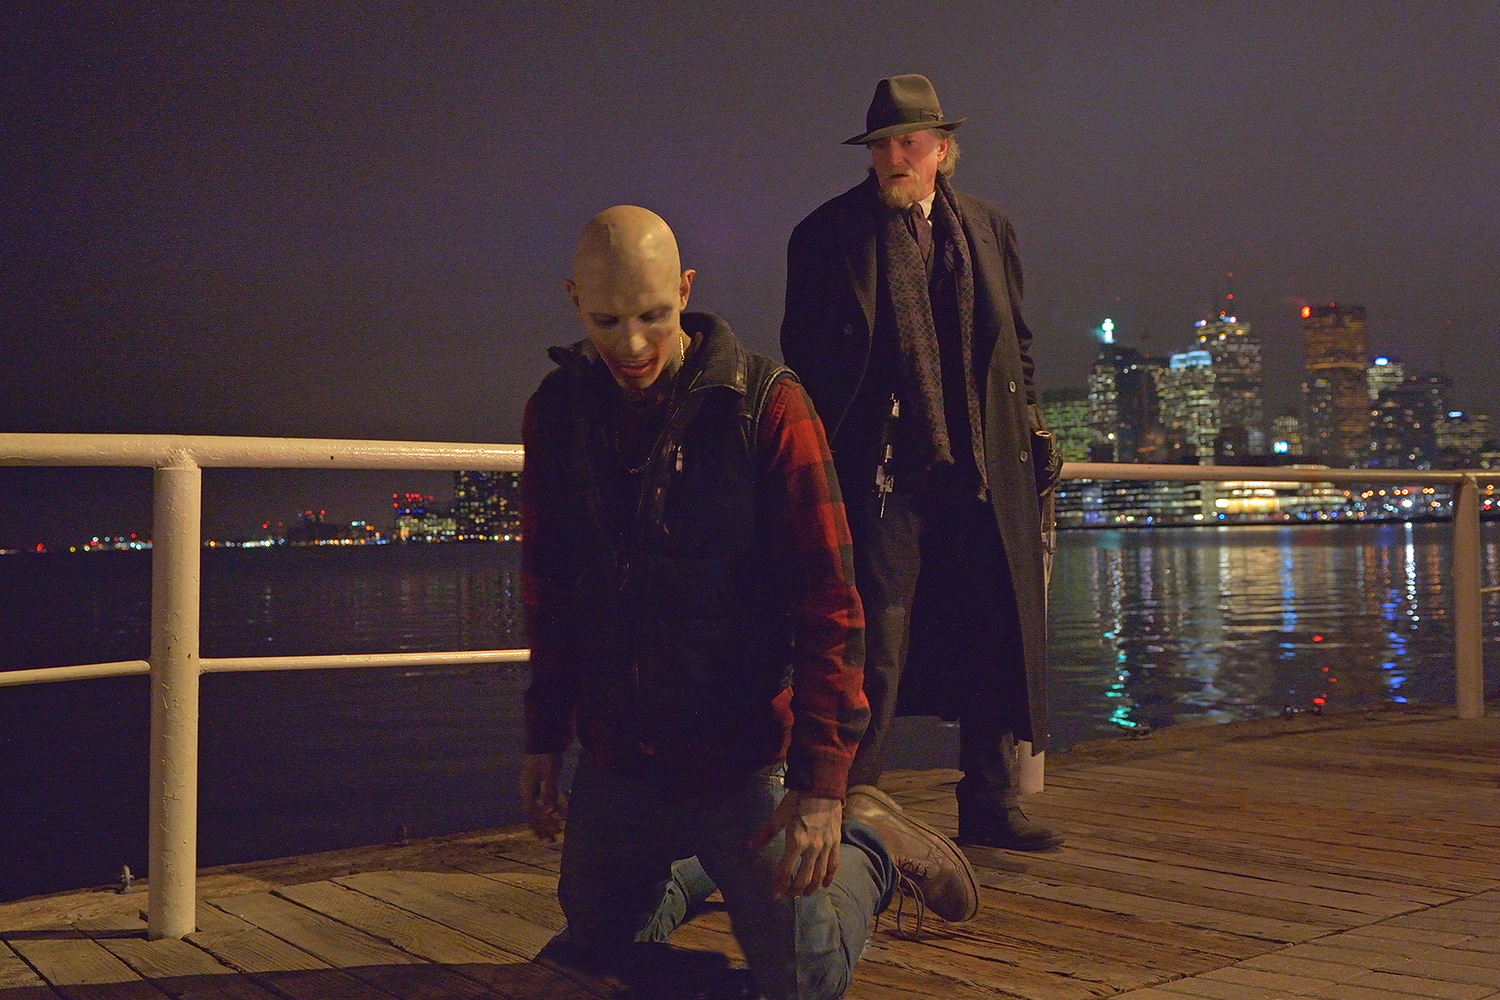 STRAIN 01042d hires1 - The Strain - Season 2 (Review)